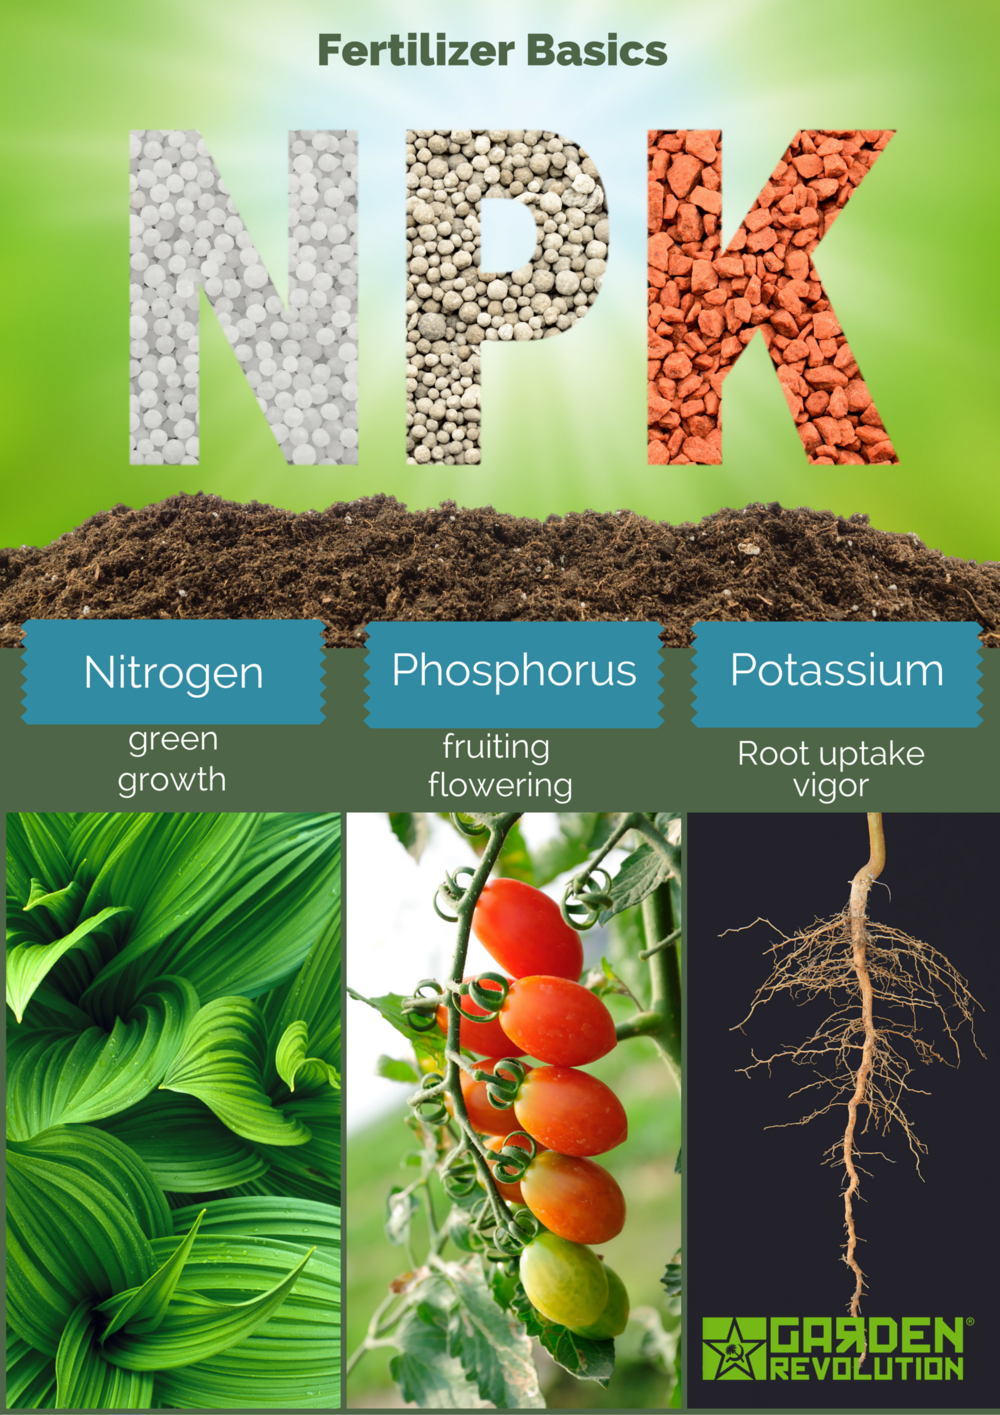 """101 lesson on """"Just What those Letters Mean"""" on the fertilizer containers and what they can do for your plants. 1st number is N; 2nd number is P; 3rd number is K; The number refers to percentage by weight. It is important to know the requirements of the plant before fertilizing."""